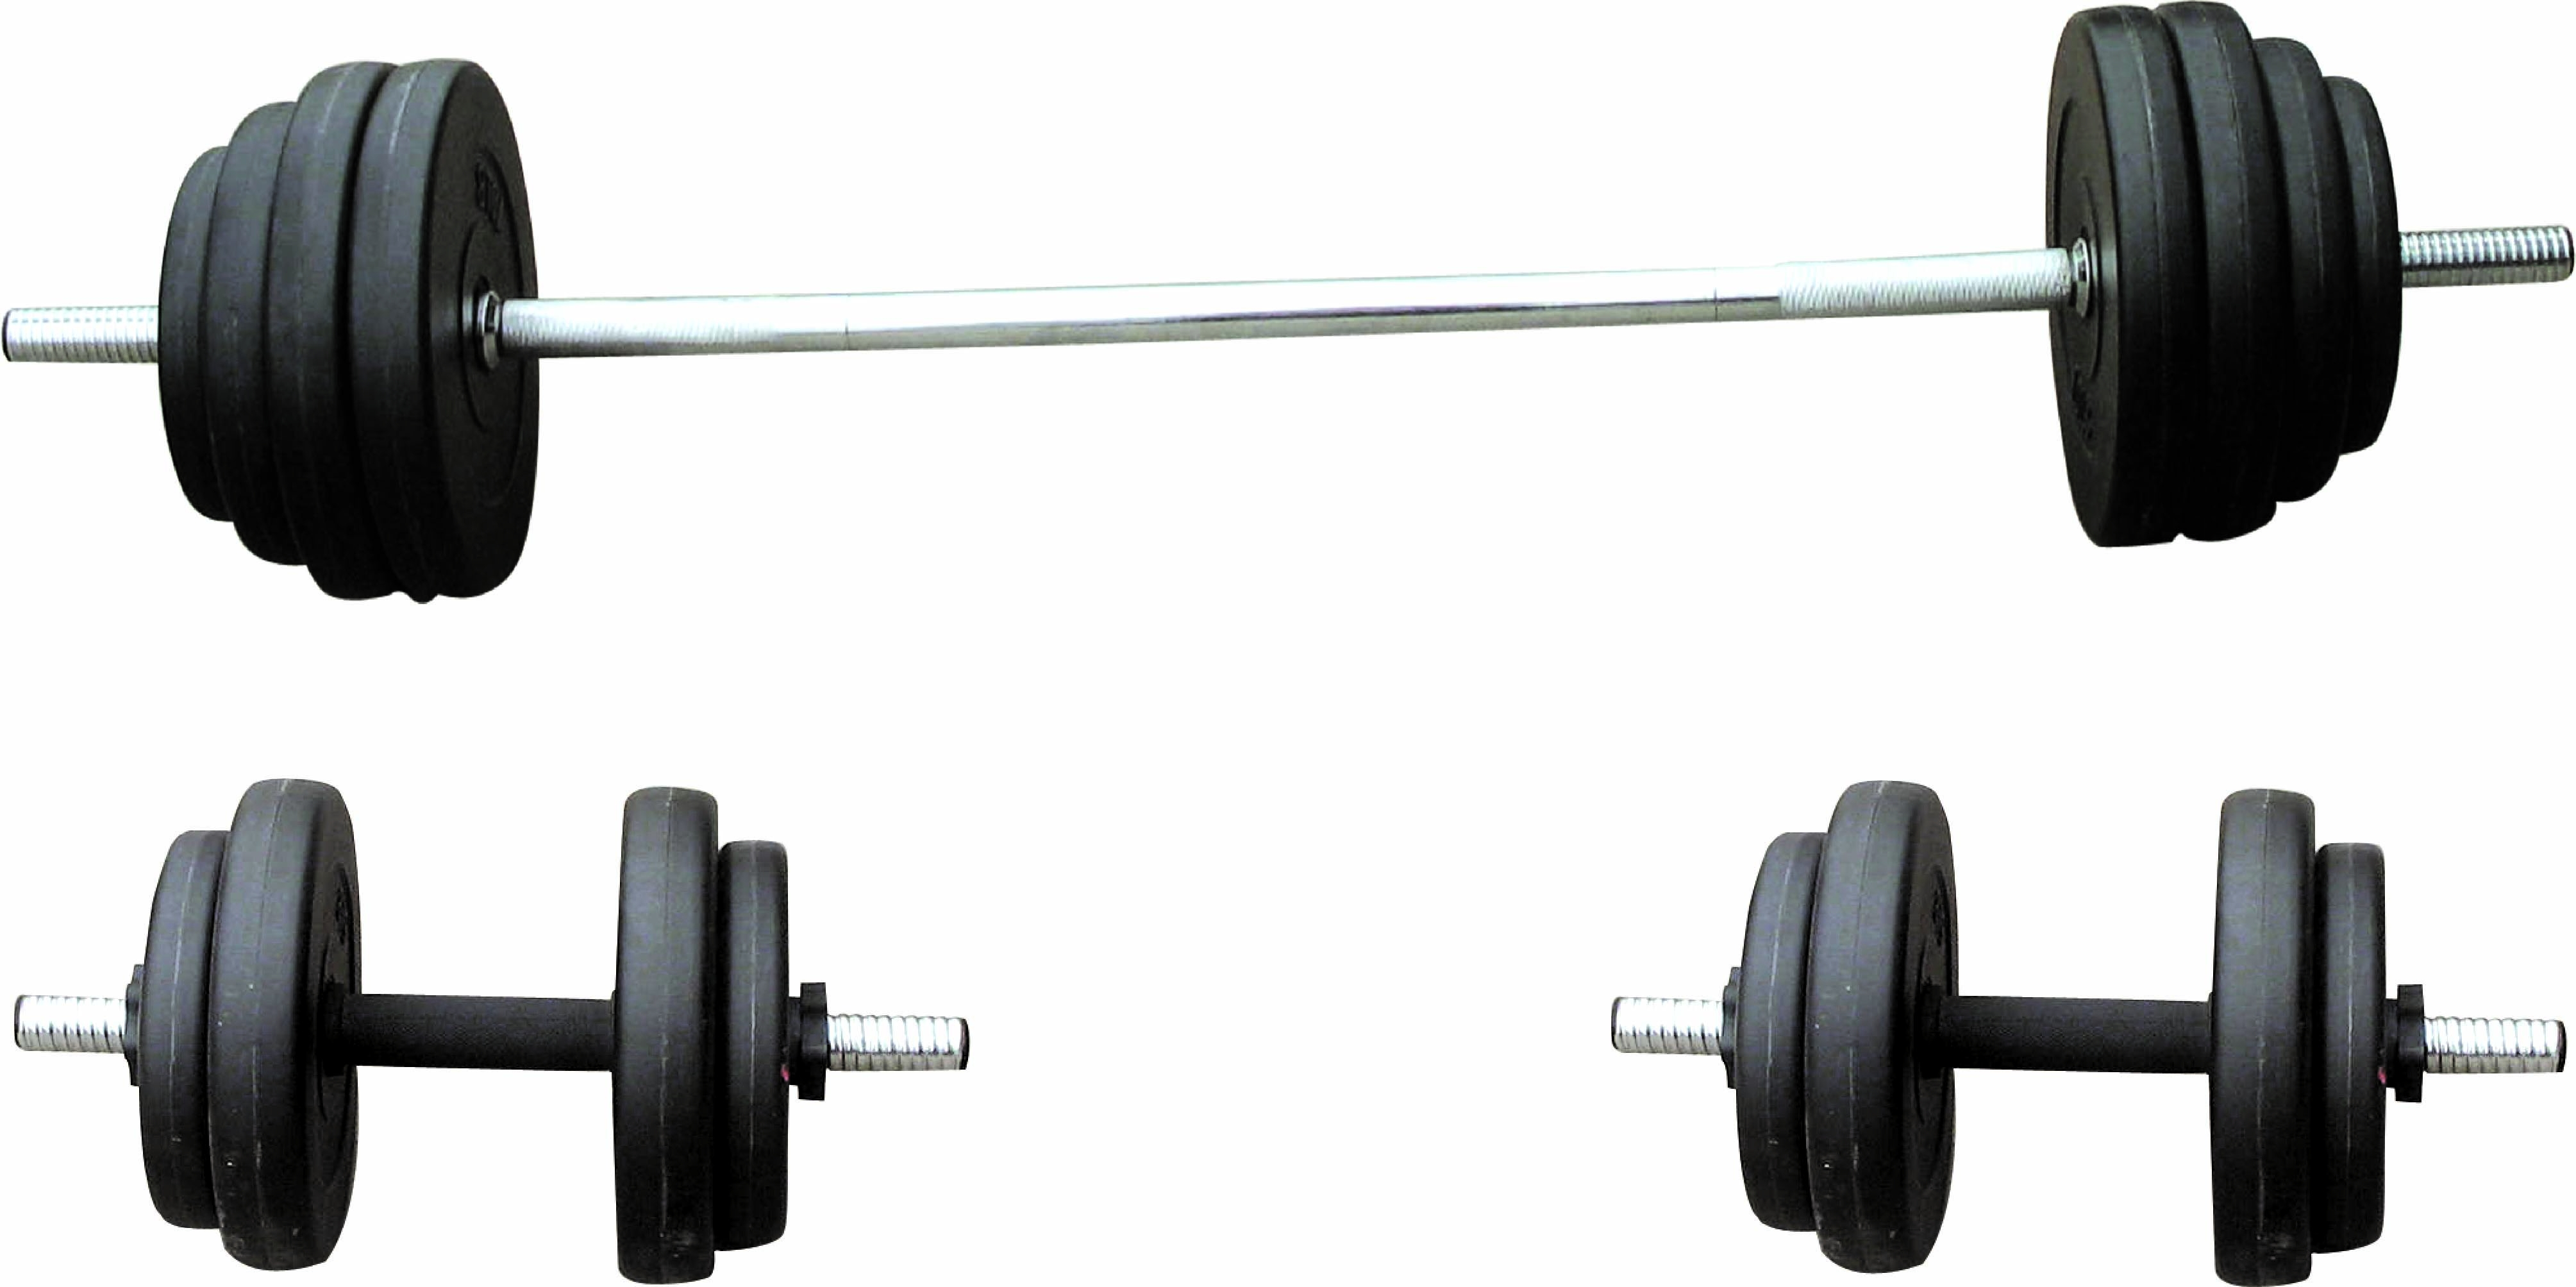 New collection digital n. Barbell clipart barbell crossfit